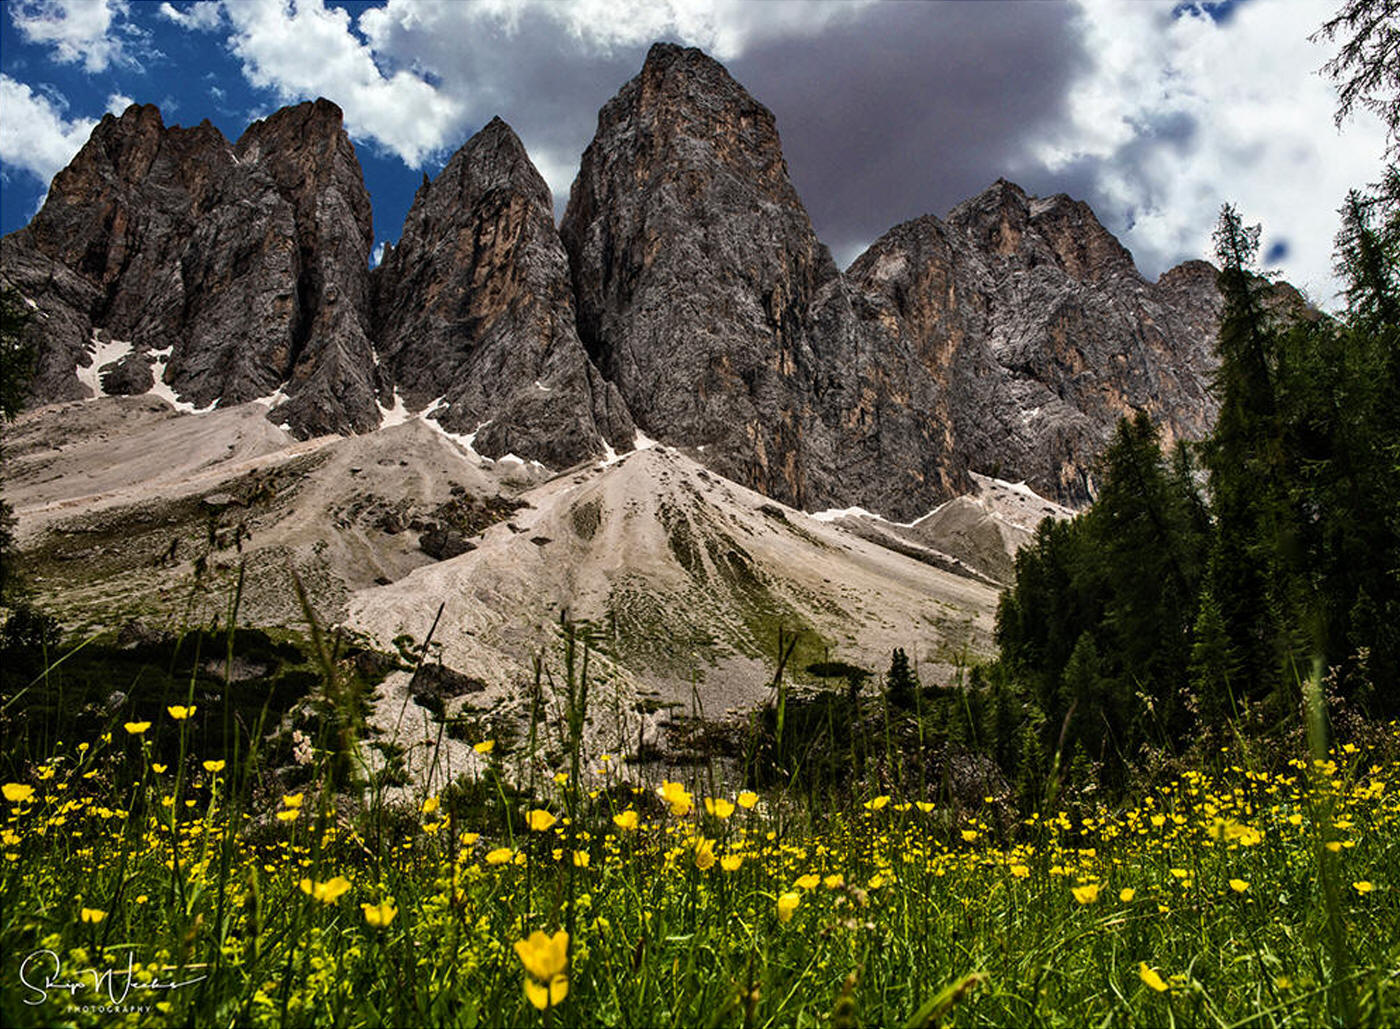 Base of the Dolomites by Skip Weeks